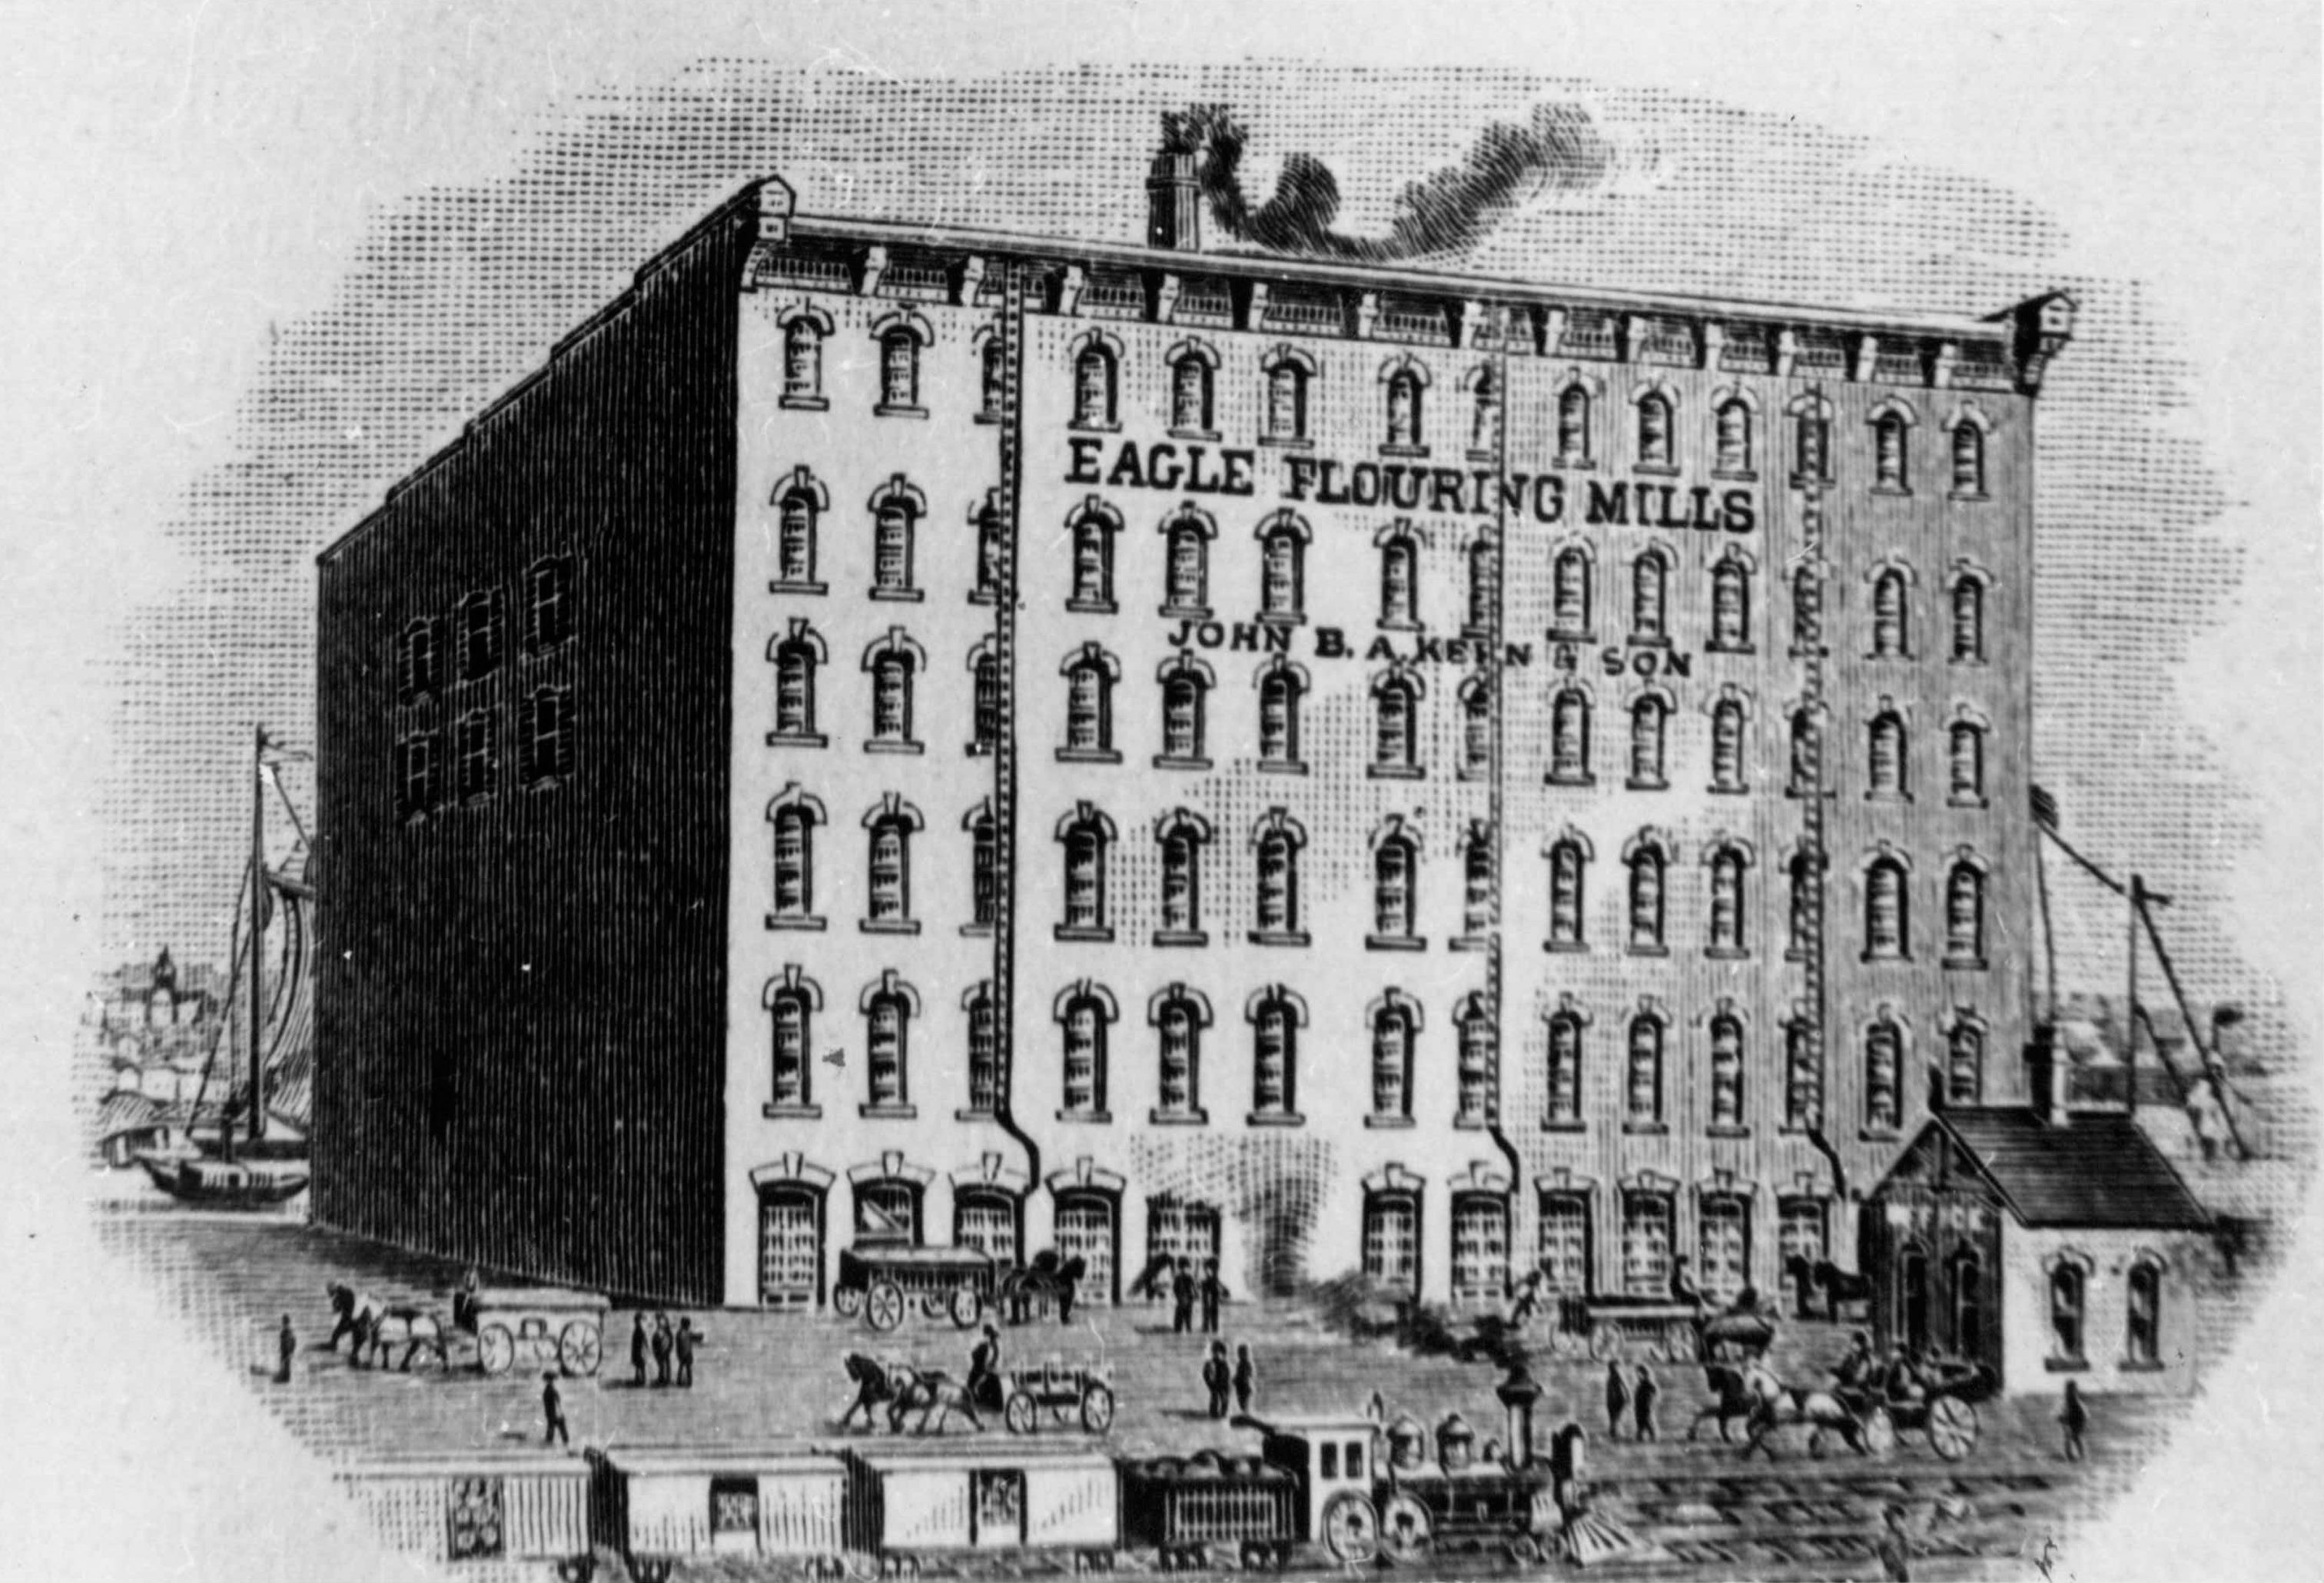 Artist's sketch of an Eagle Flouring Mills building. Opened in in 1844 by John Anderson, it came under the management of John B.A. Kern in 1866 and was one of the largest mills in the area.